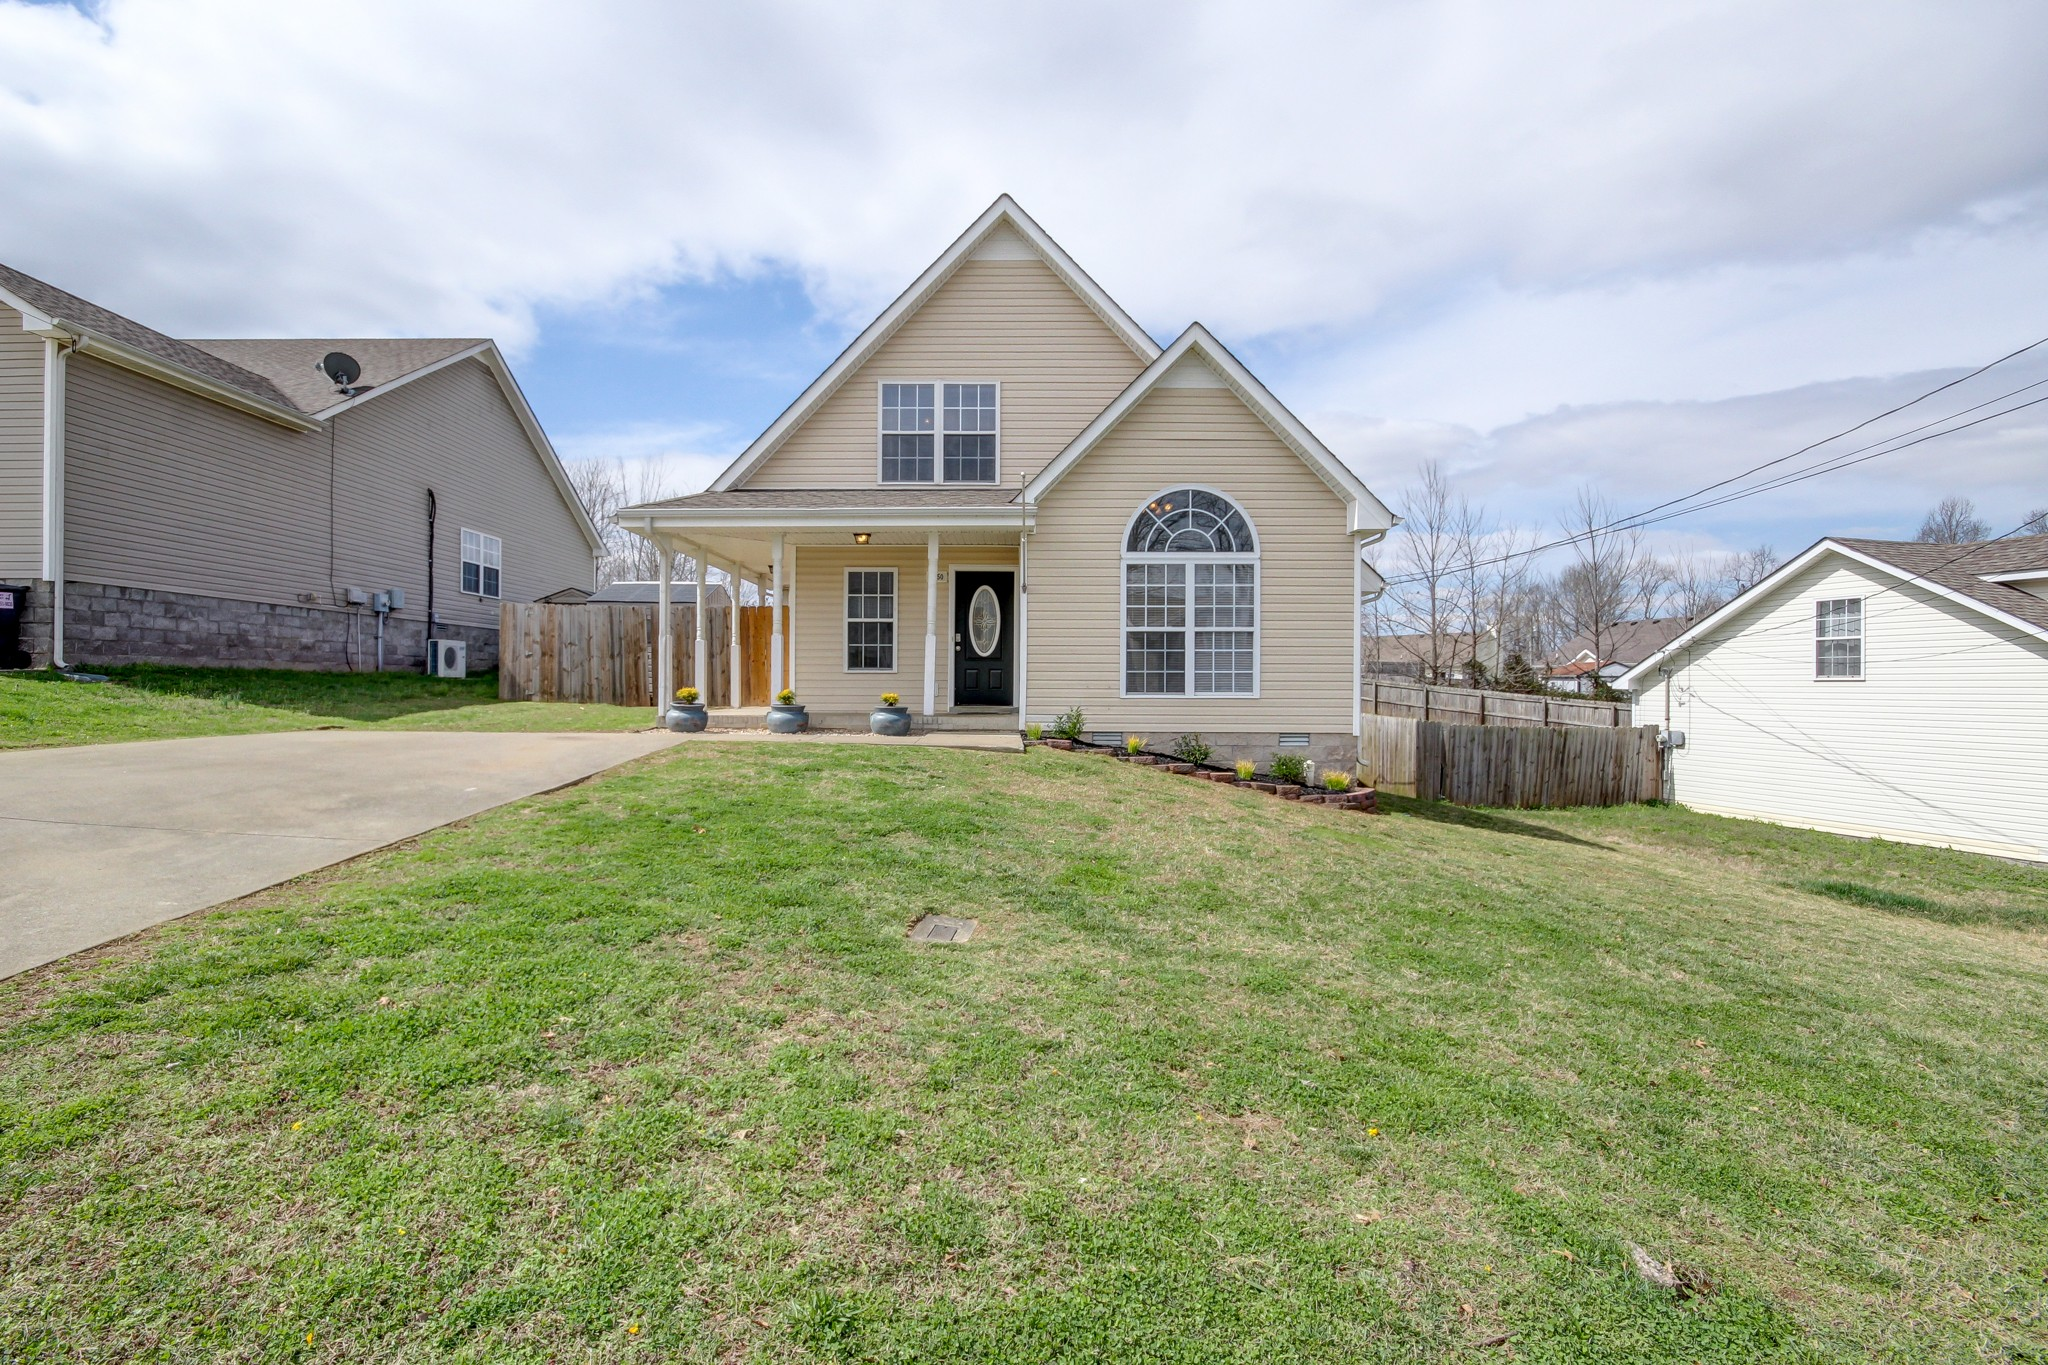 2850 Rome Ln Property Photo - Clarksville, TN real estate listing